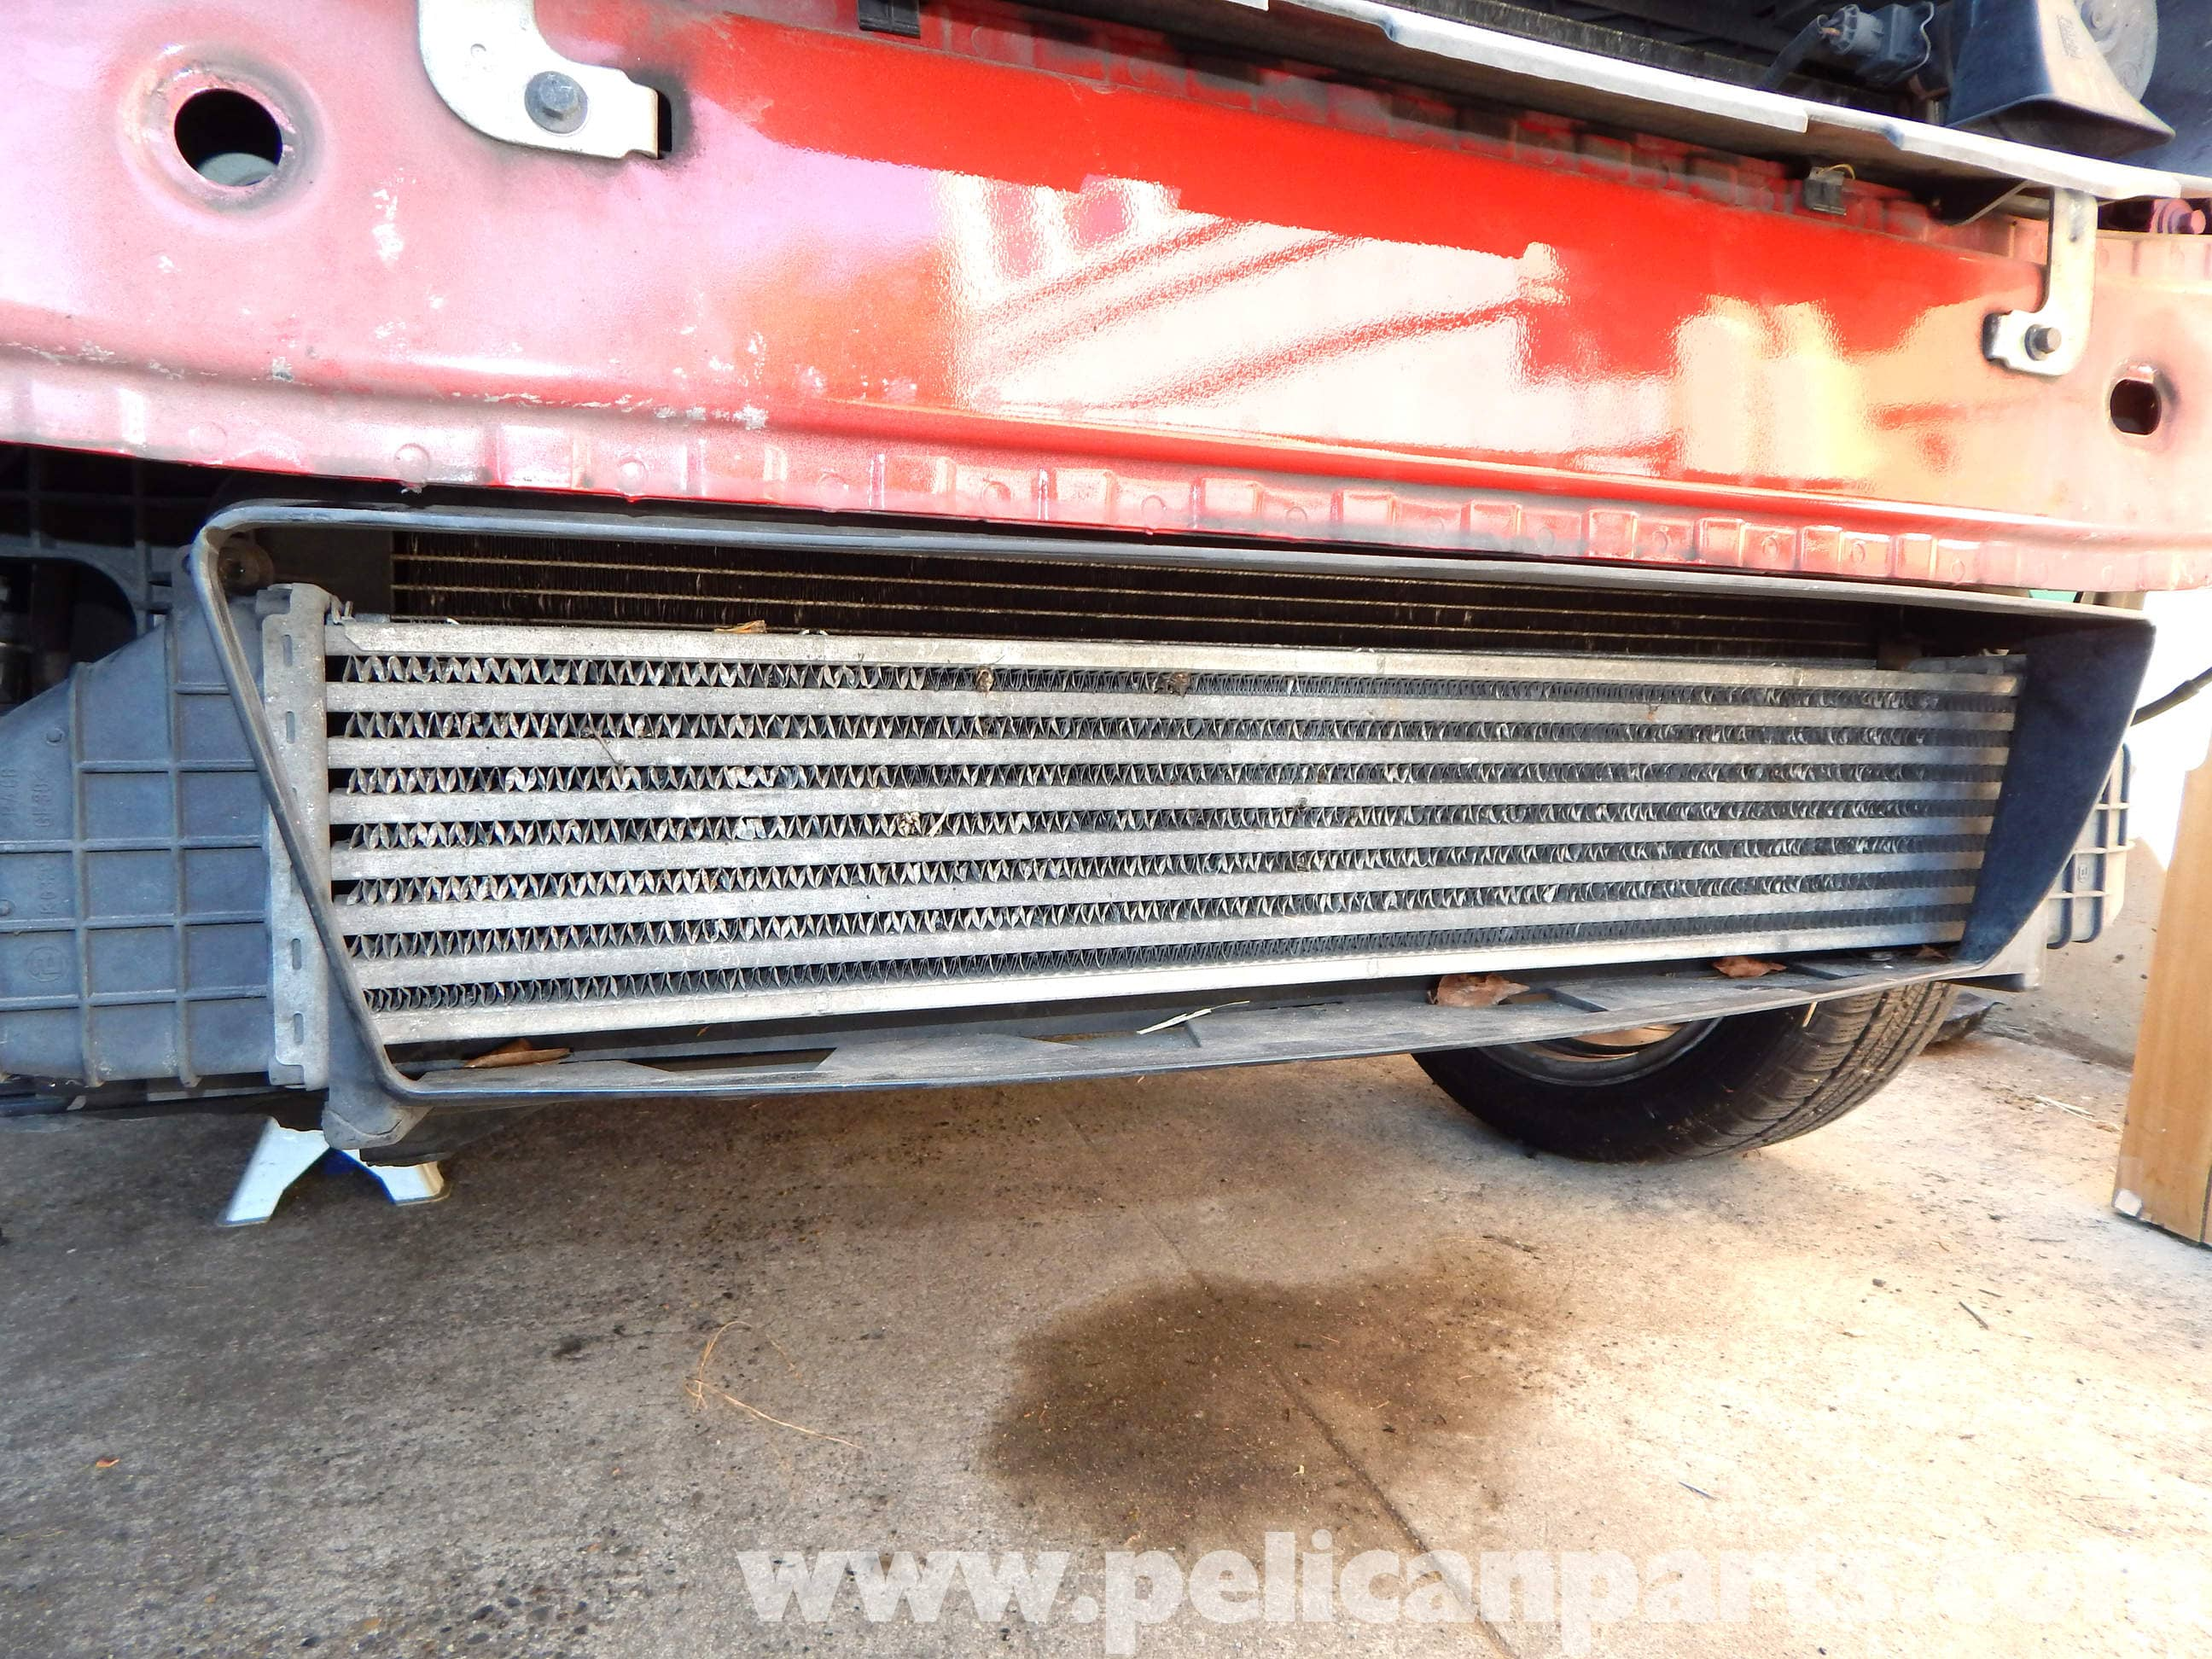 Volvo C30 Intercooler Removal (2007-2013) - Pelican Parts DIY